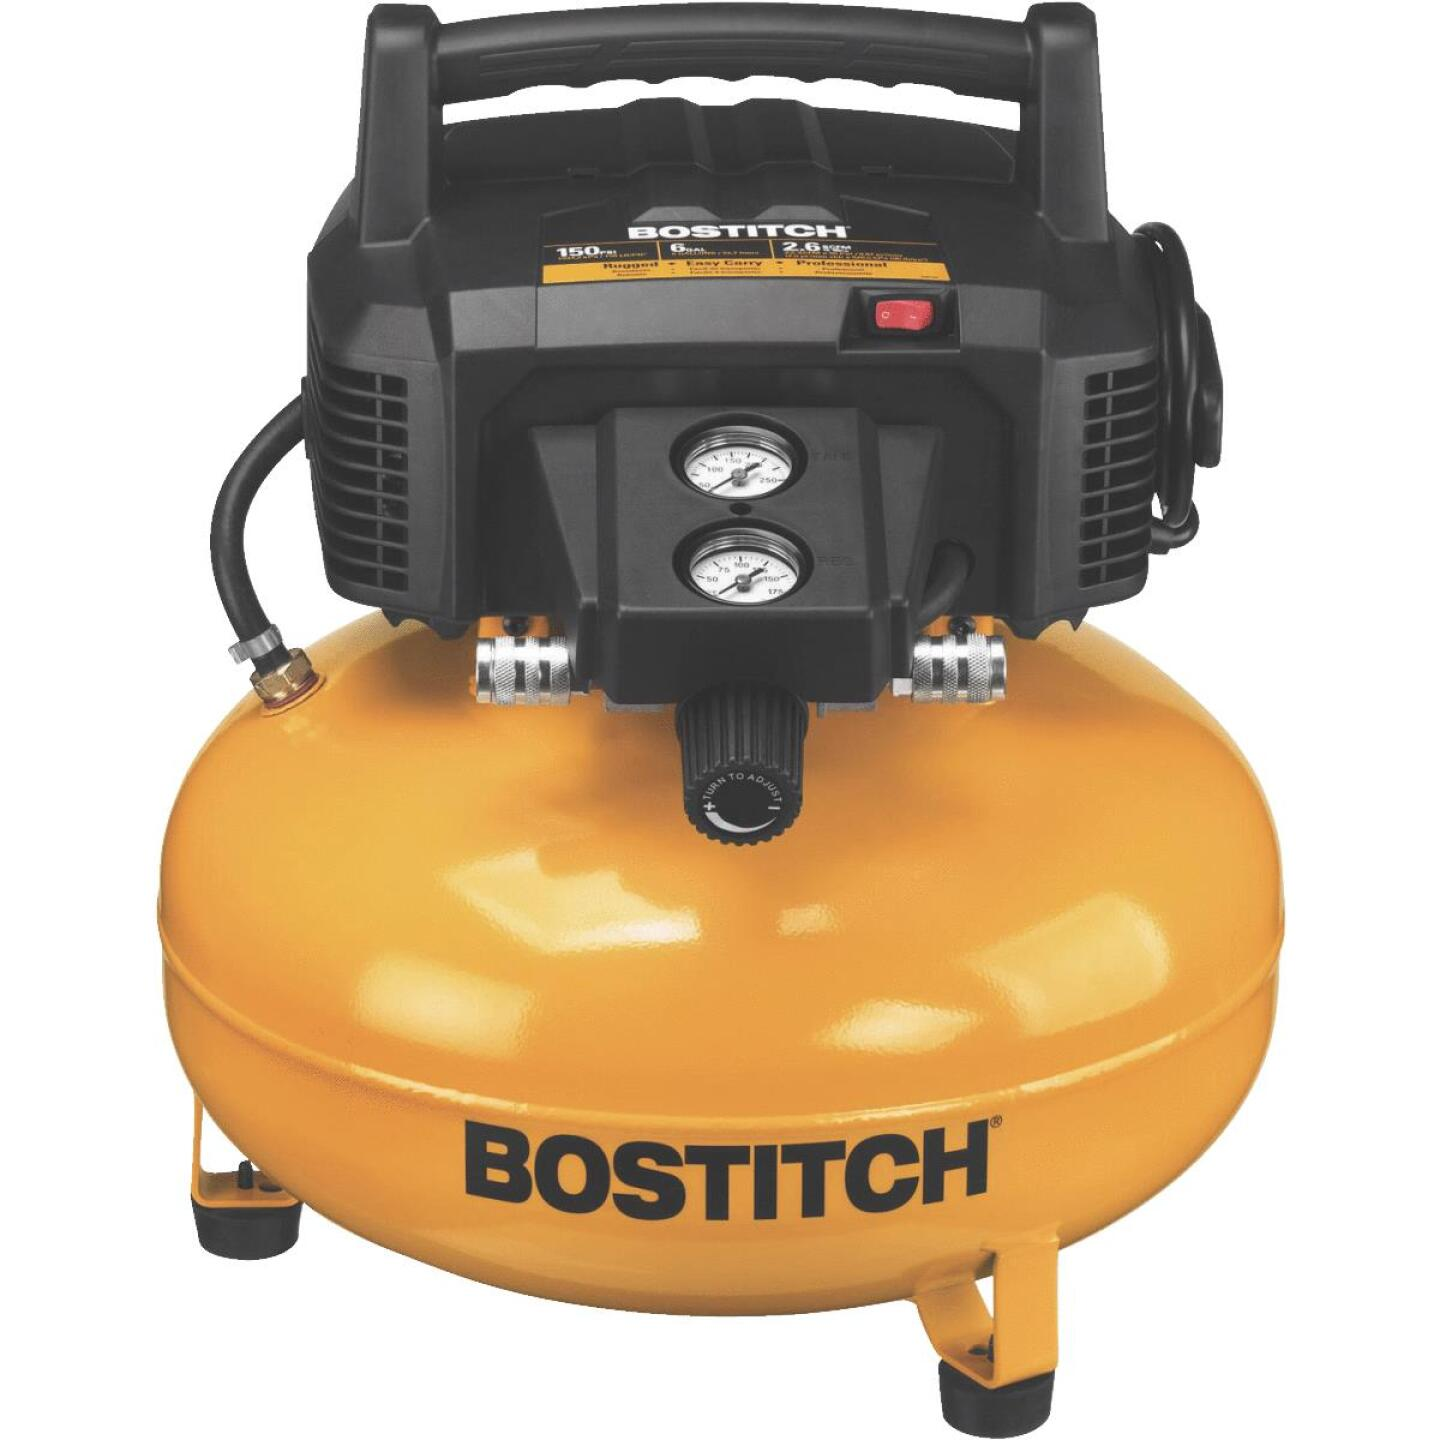 Bostitch 6 Gal. Portable 150 psi Pancake Air Compressor Image 1